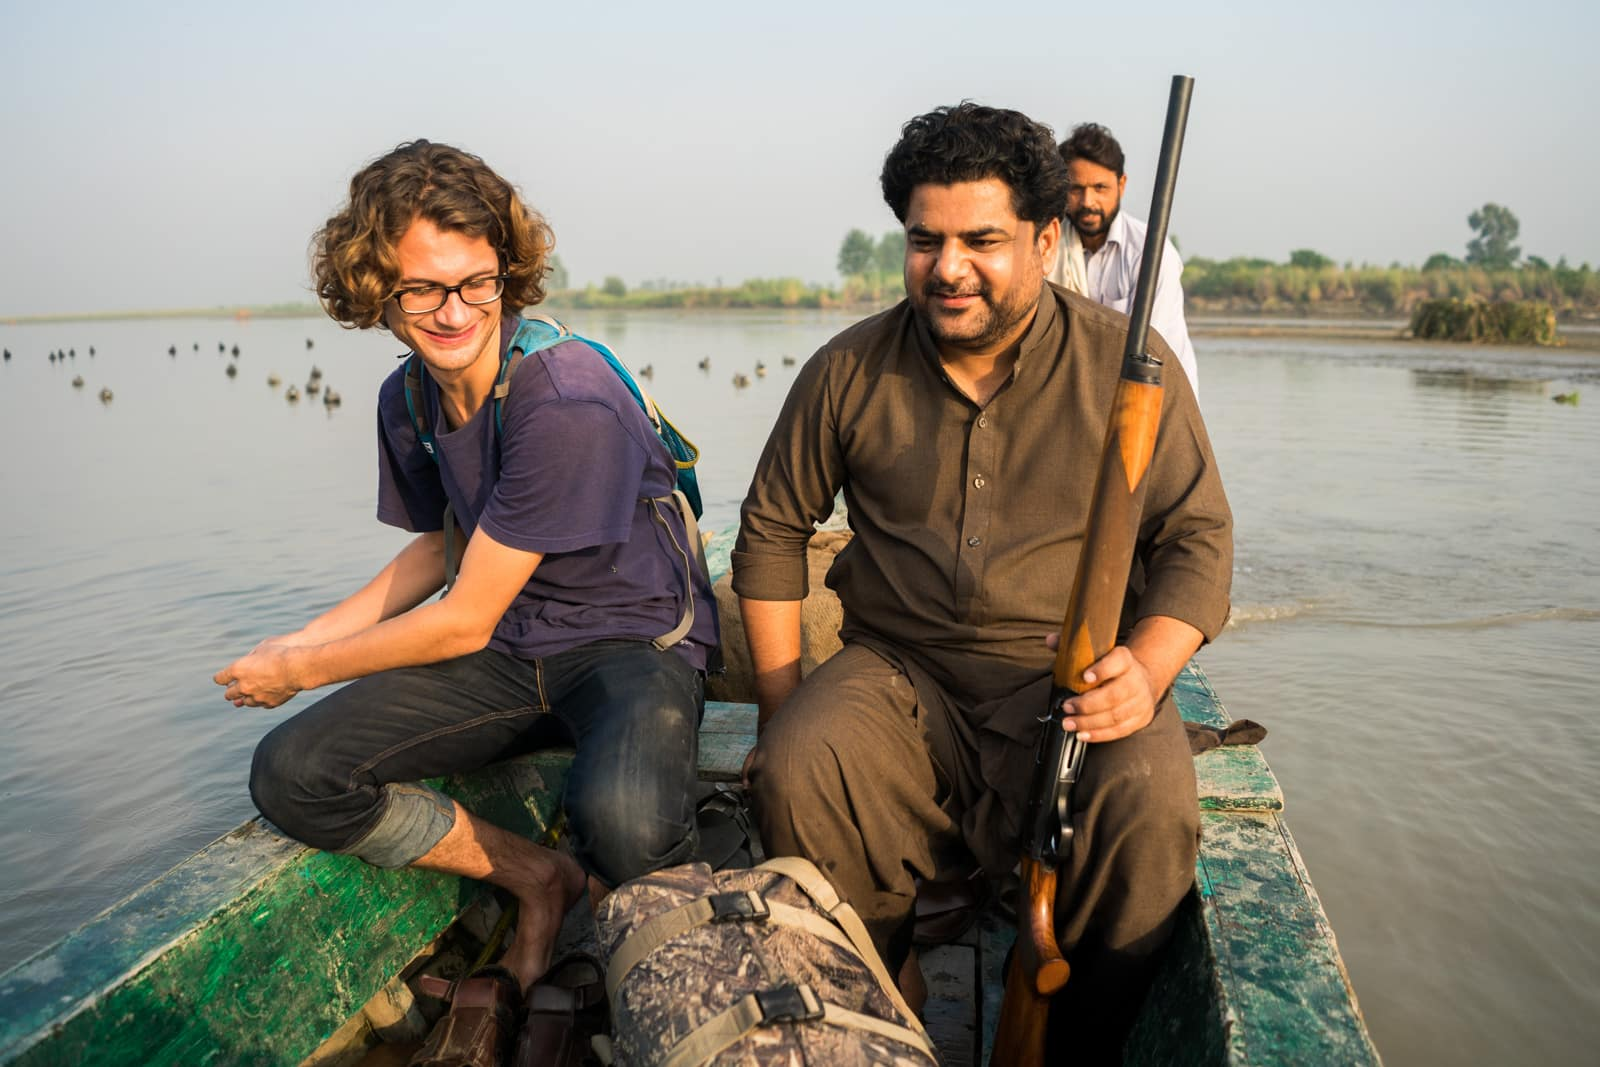 Who are Pashtuns? - Boat ride with a rifle in Mardan, Pakistan - Lost With Purpose travel blog